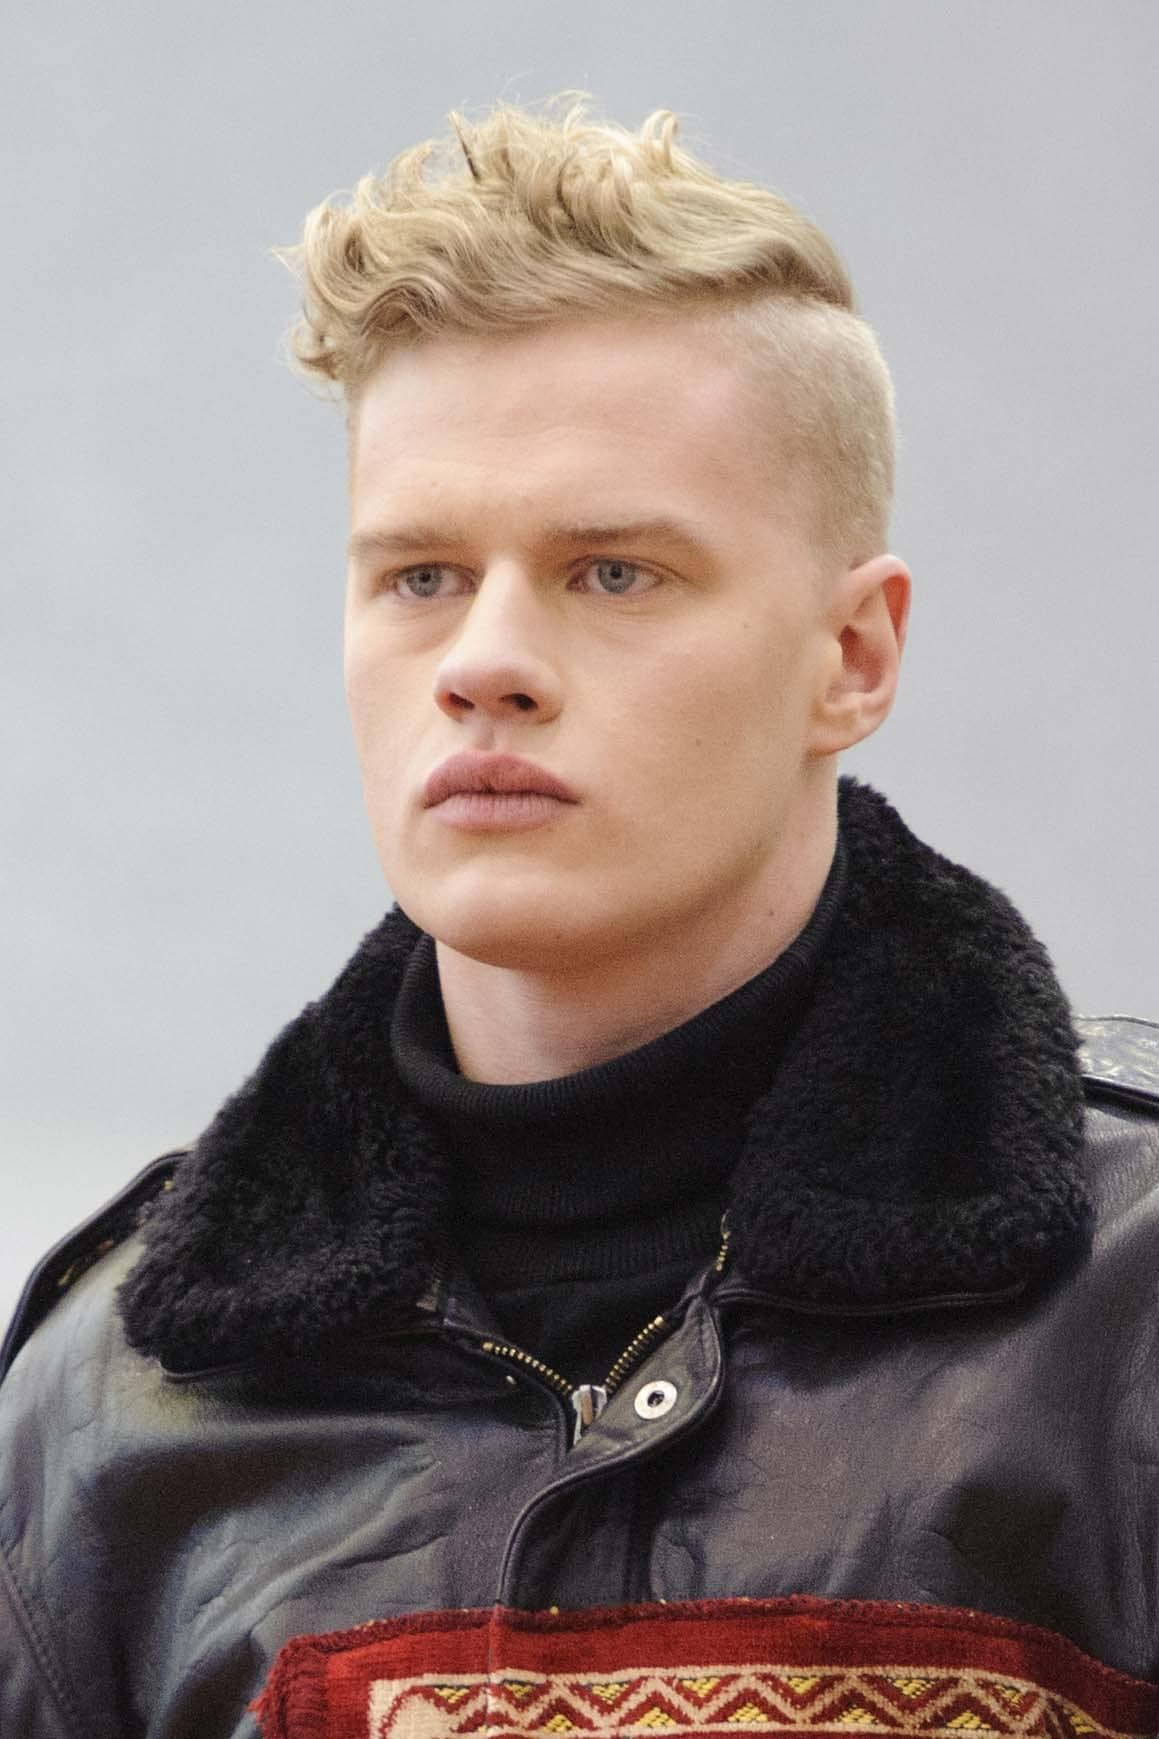 Fade Haircut Trends For Guys 10 Haircut Ideas To Try Out